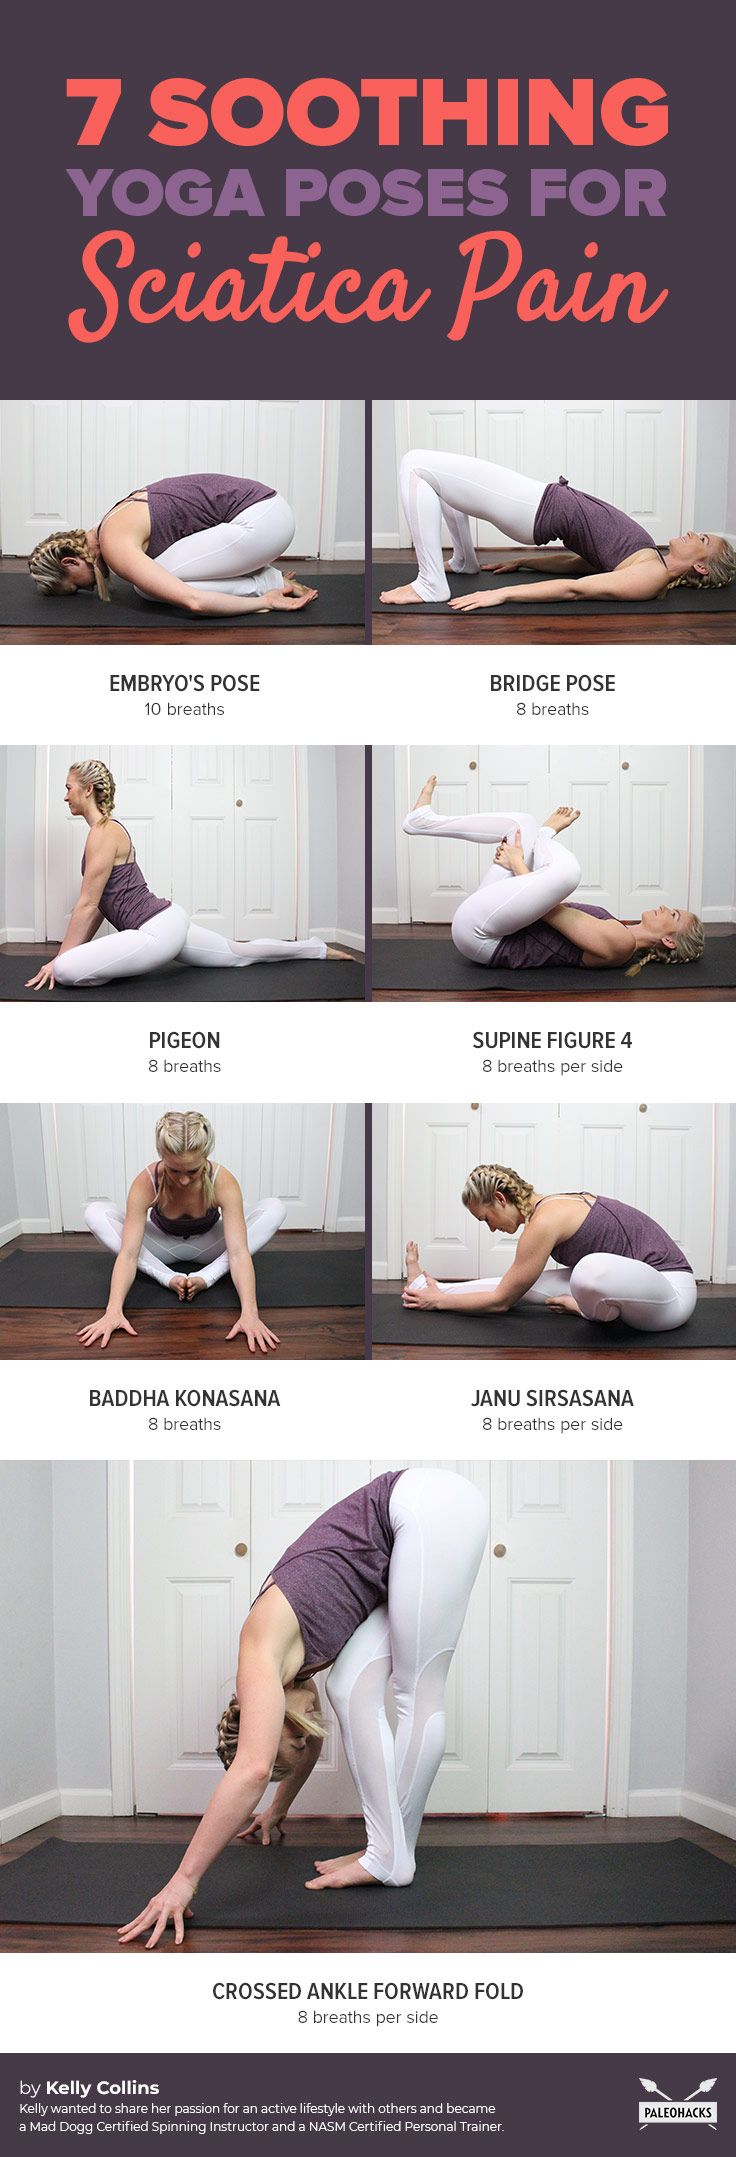 If you suffer from a radiating pain in your lower back and down  through your leg, you may have sciatica. Here are seven easy, soothing yoga poses for sciatica pain relief. Get the full yoga routine here: http://paleo.co/sciaticayoga